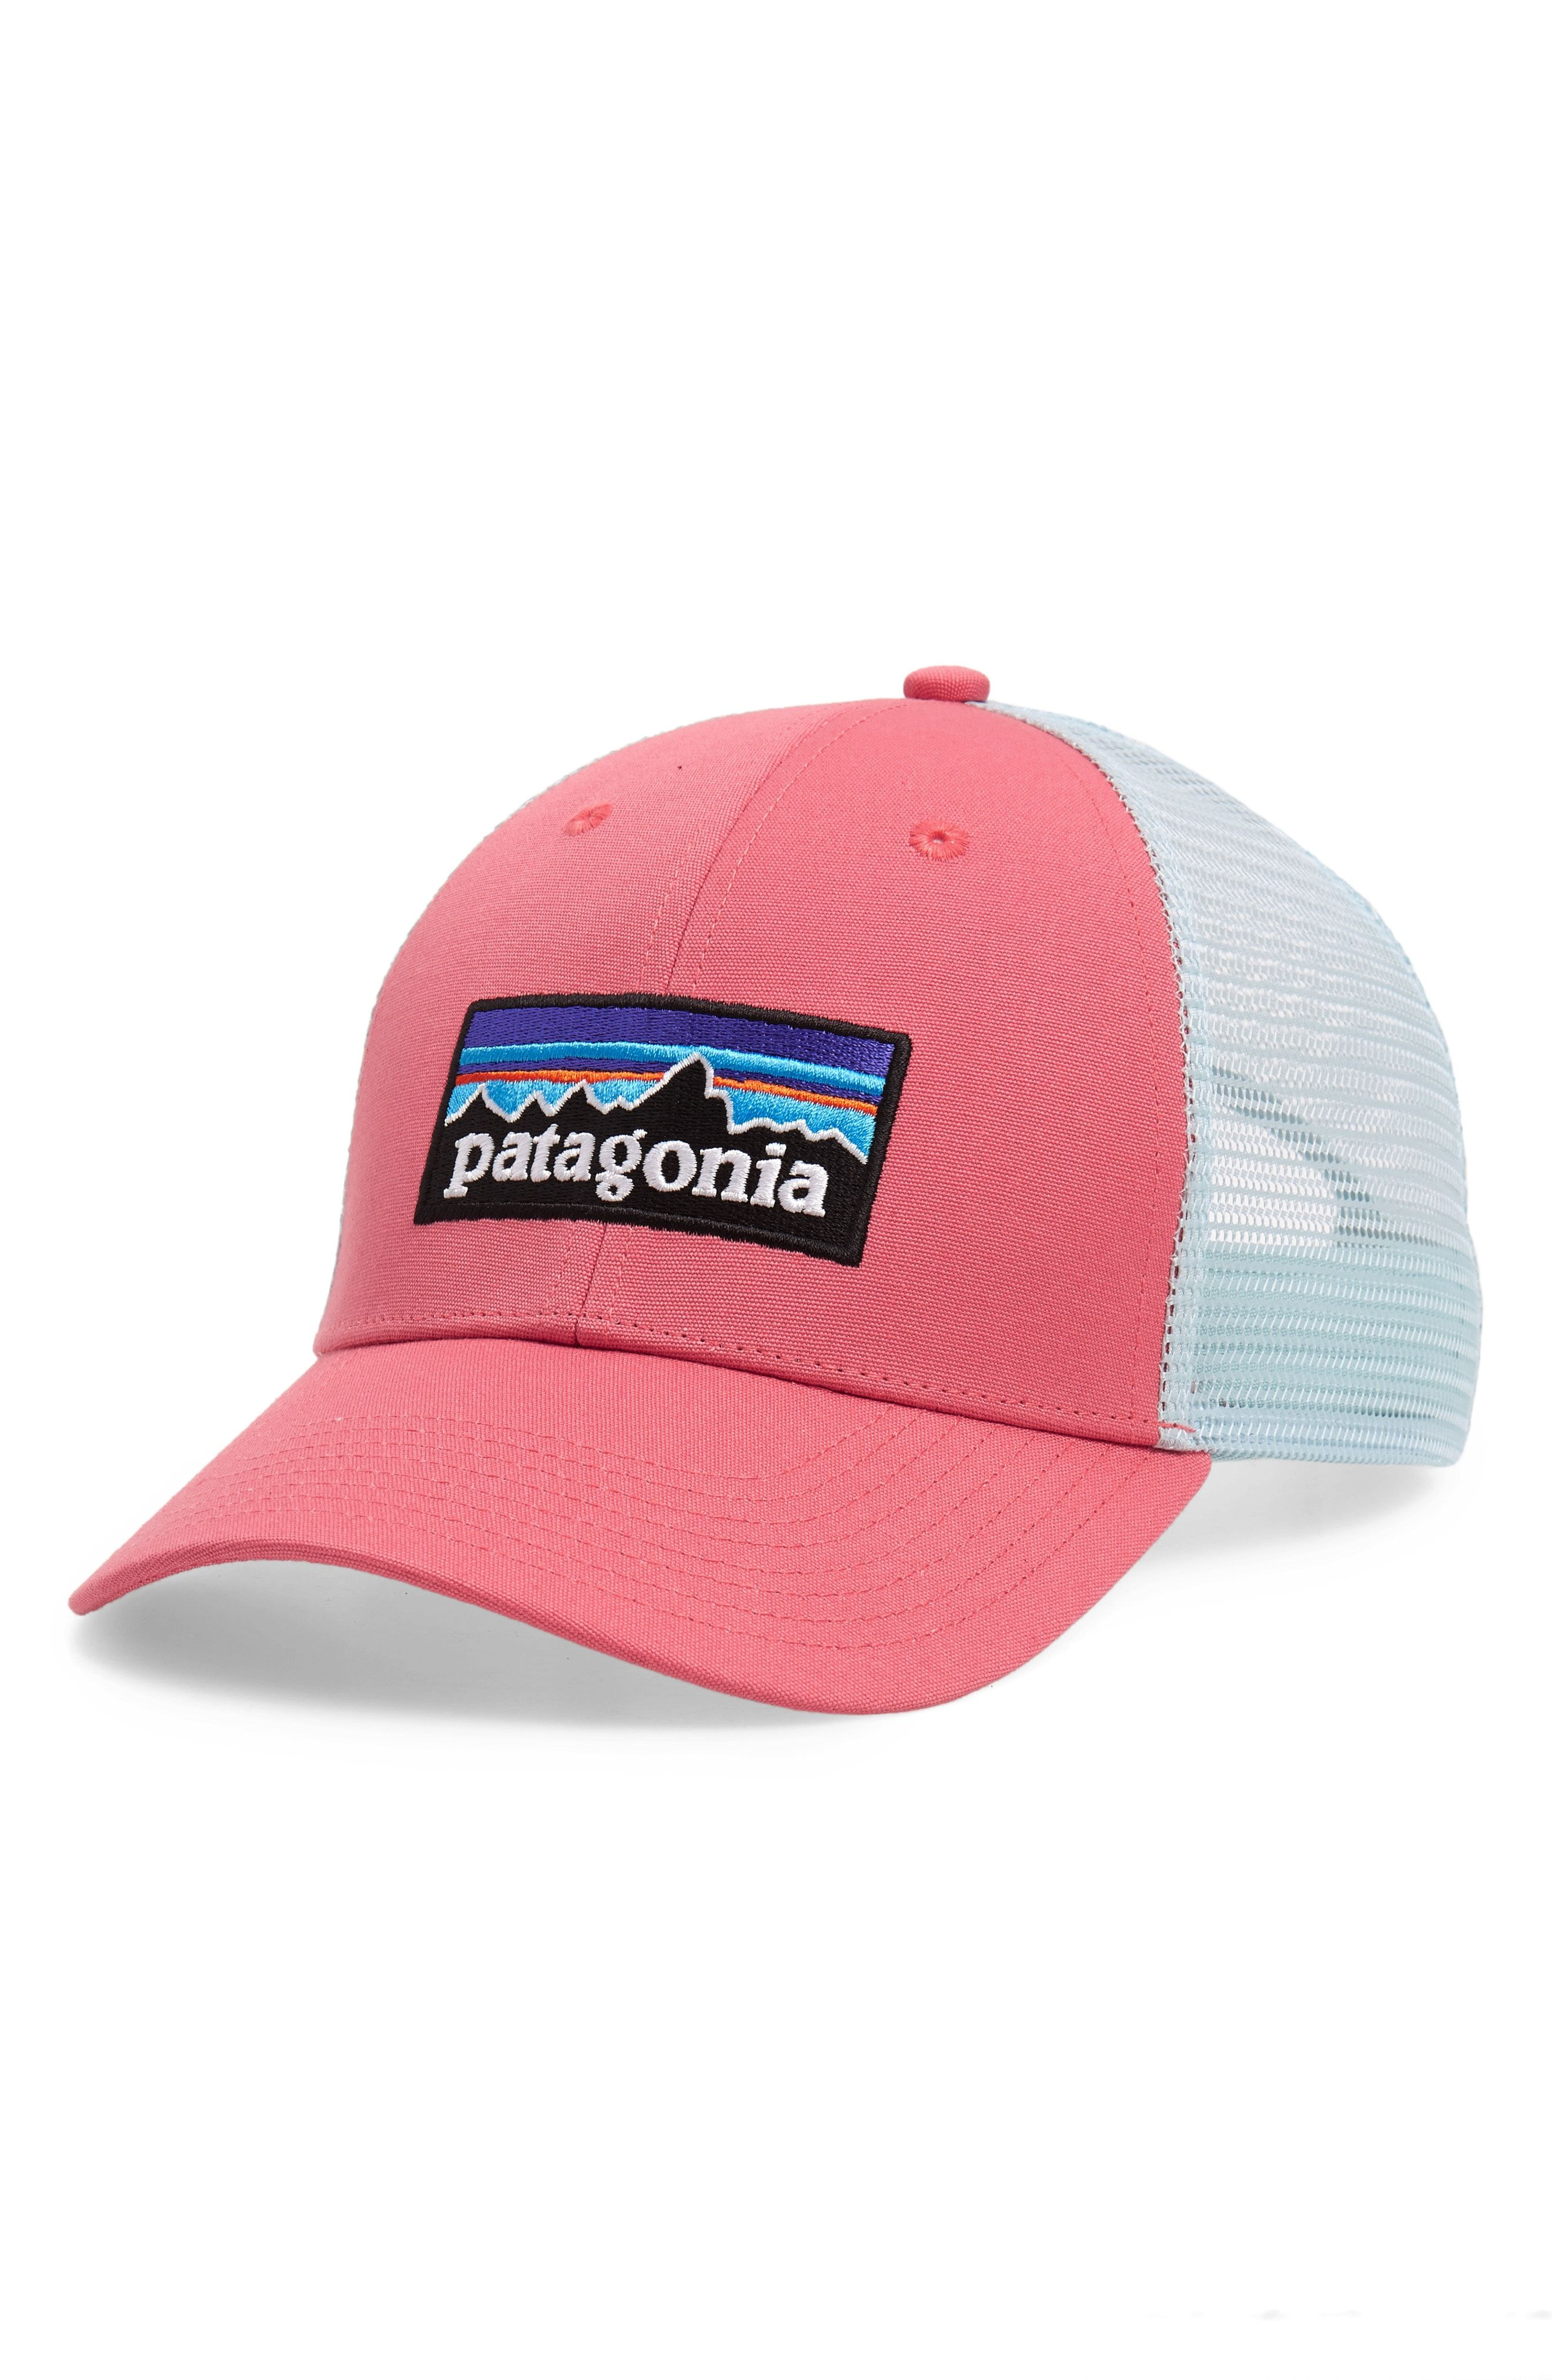 PATAGONIA  PG - LO PRO  TRUCKER HAT - PINK.  patagonia  d5e2e2297b22